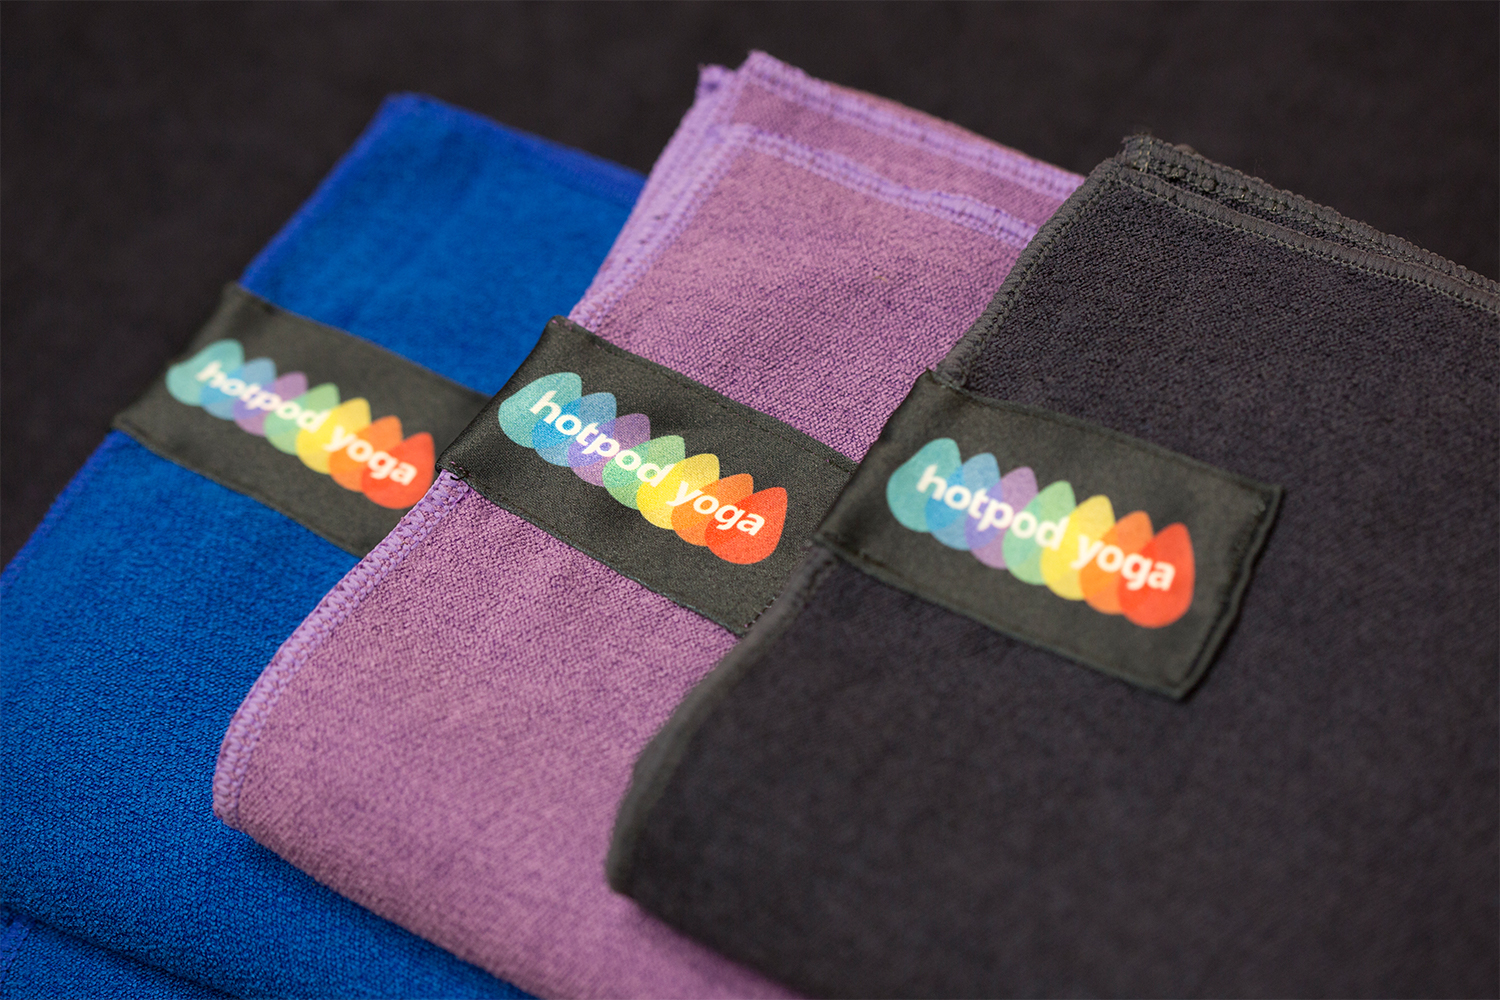 Hotpod Yoga towels.